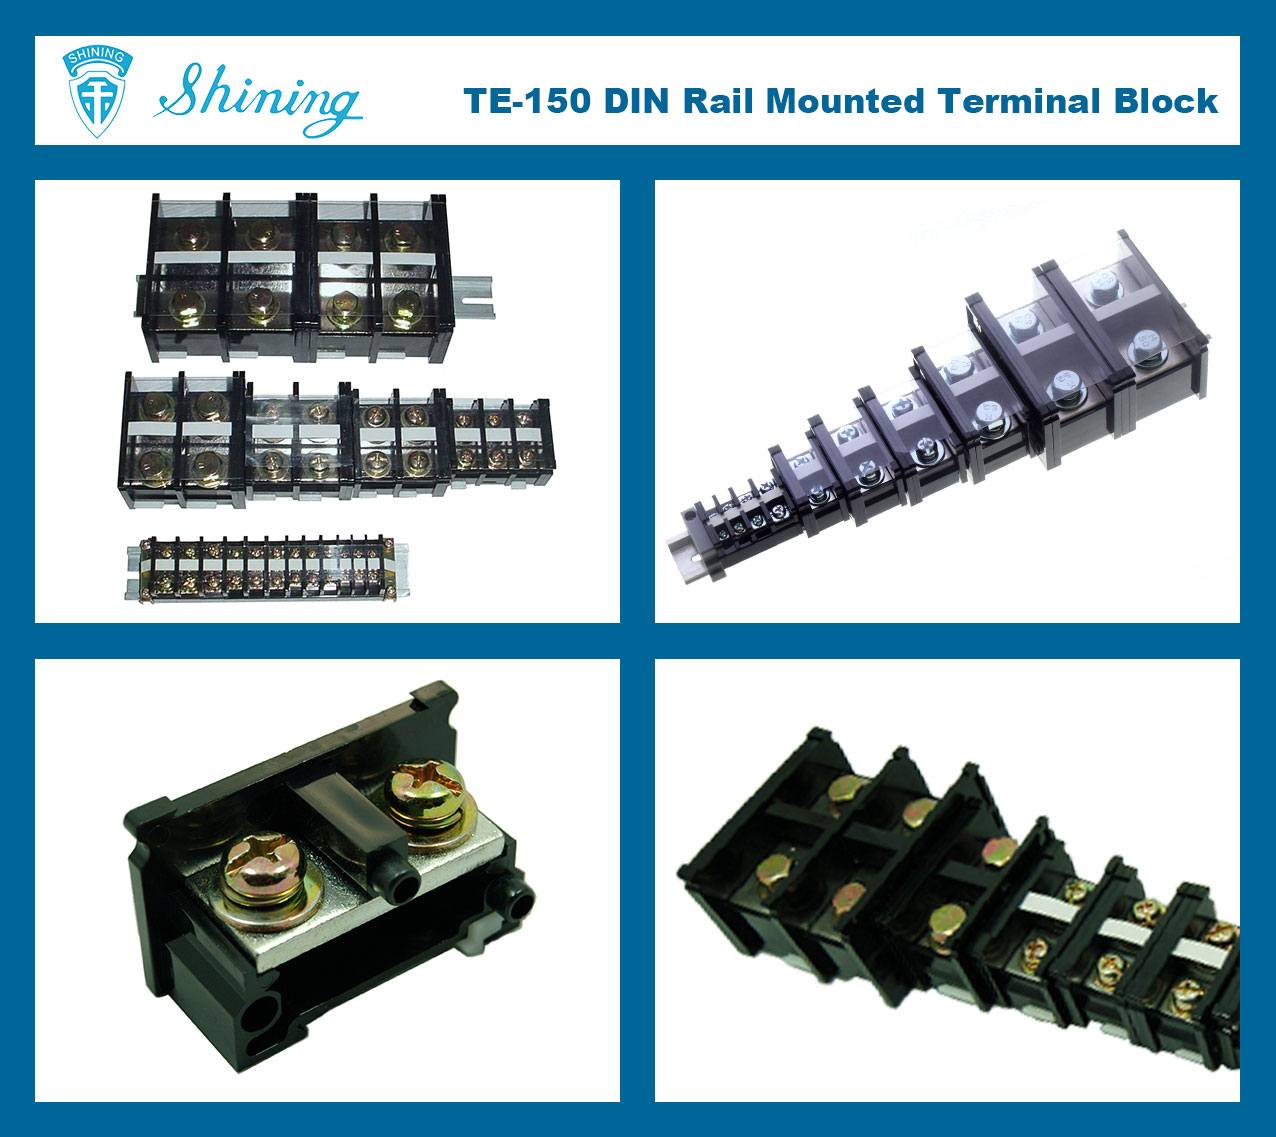 SHINING-TE-150 35mm Din Rail Mounted Assembly Type 600V 150A Terminal Strip